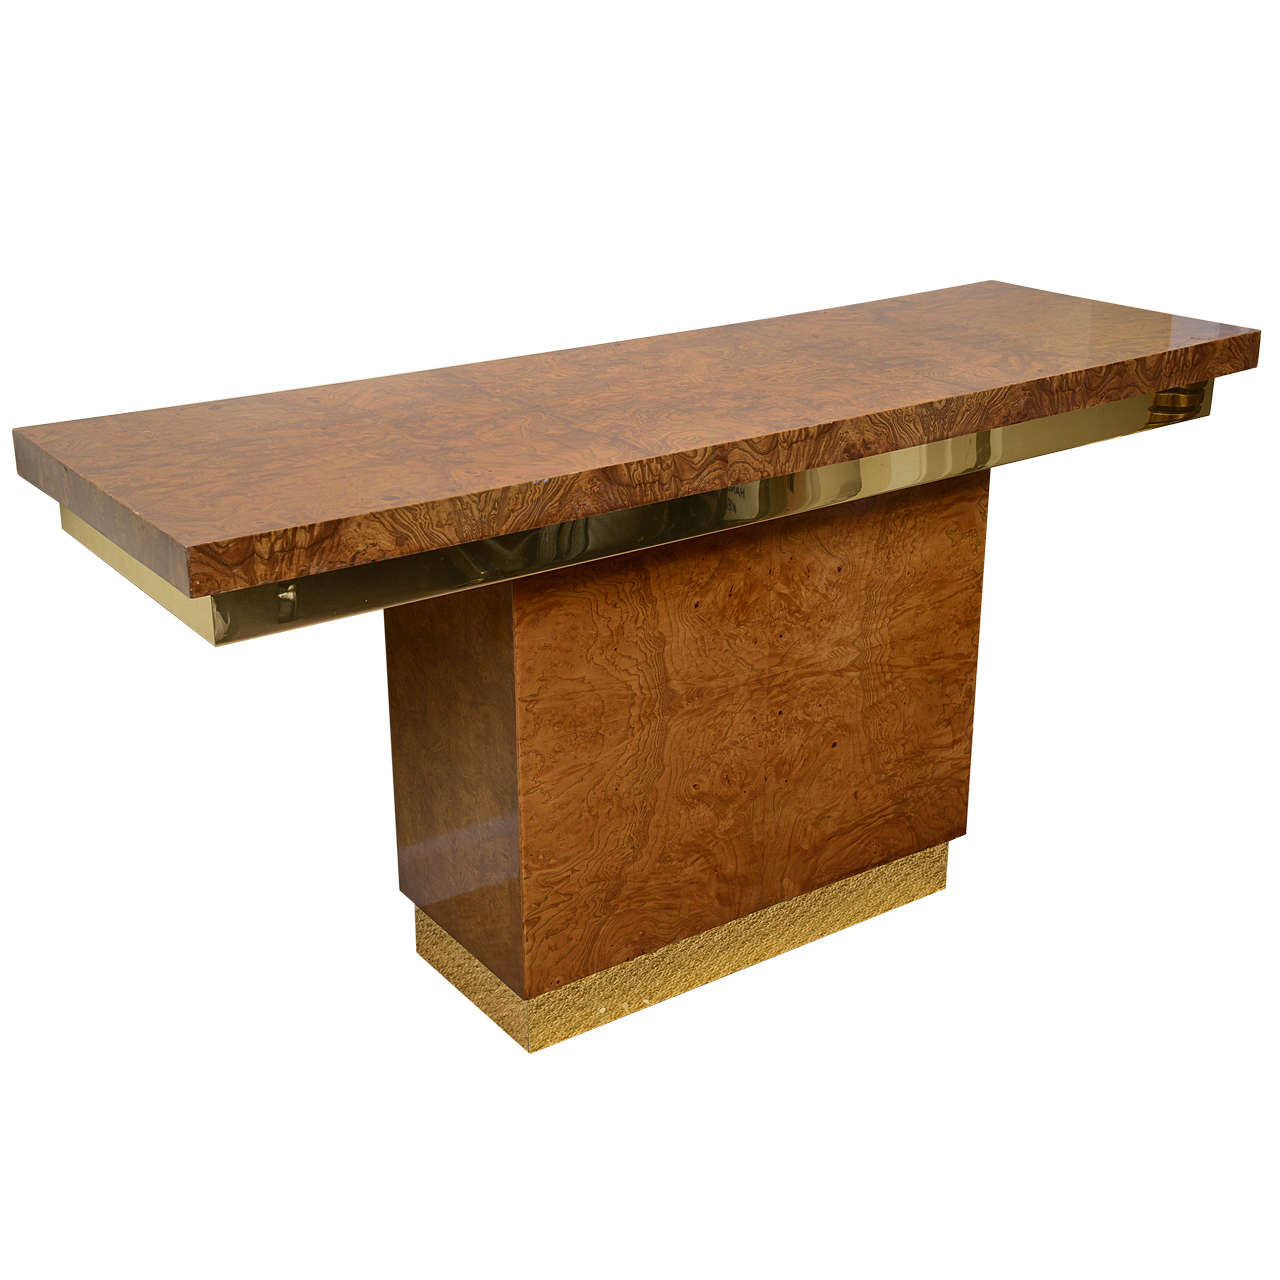 Burl wood console table at stdibs